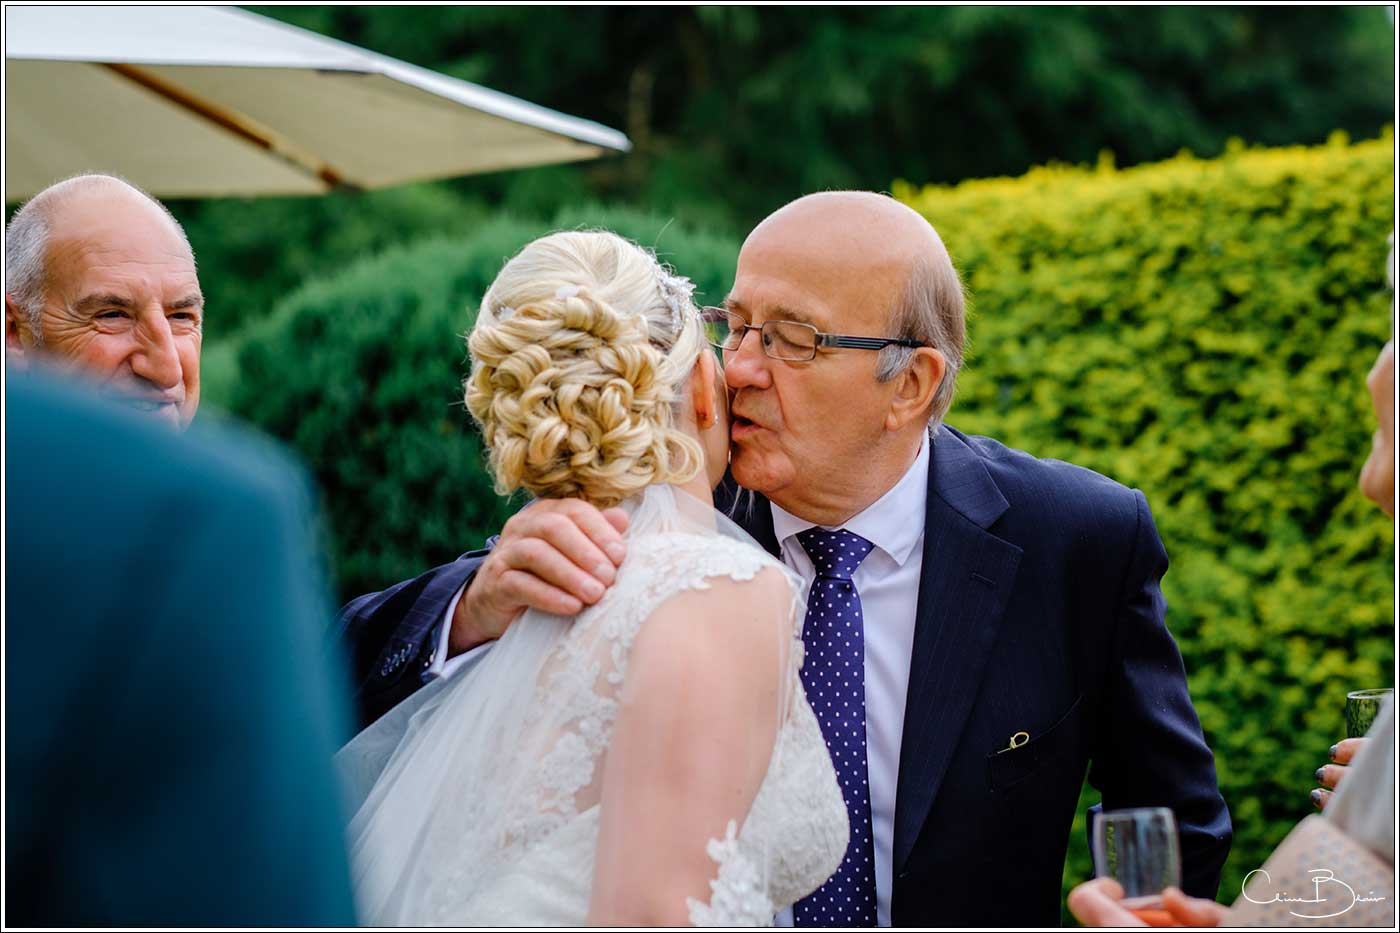 Coombe Abbey wedding photography showing man hugging and kissing bride